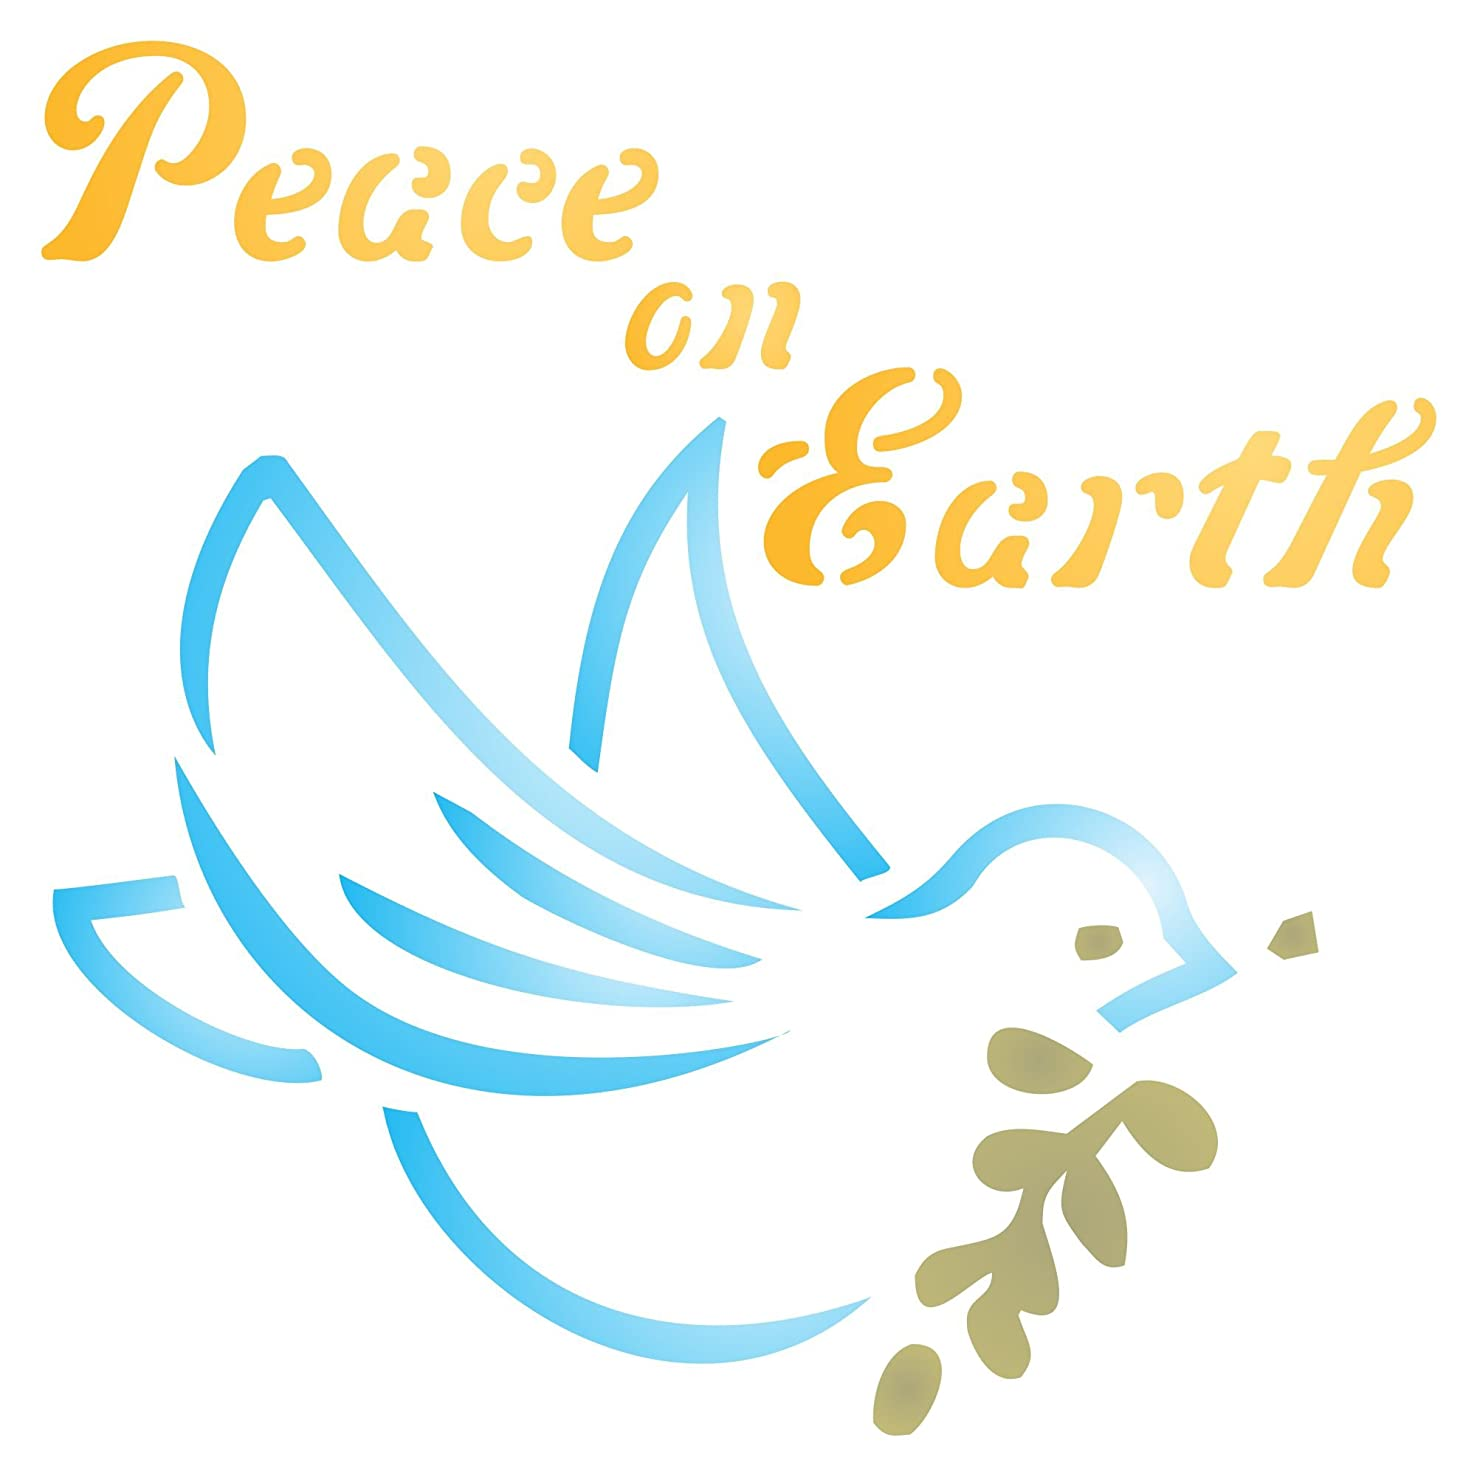 """Peace on Earth Stencil - (size 5""""w x 5""""h) Reusable Wall Stencils for Painting - Best Quality Christmas Card Dove of Peace Ideas - Use on Walls, Floors, Fabrics, Glass, Wood, Paper, and More…"""